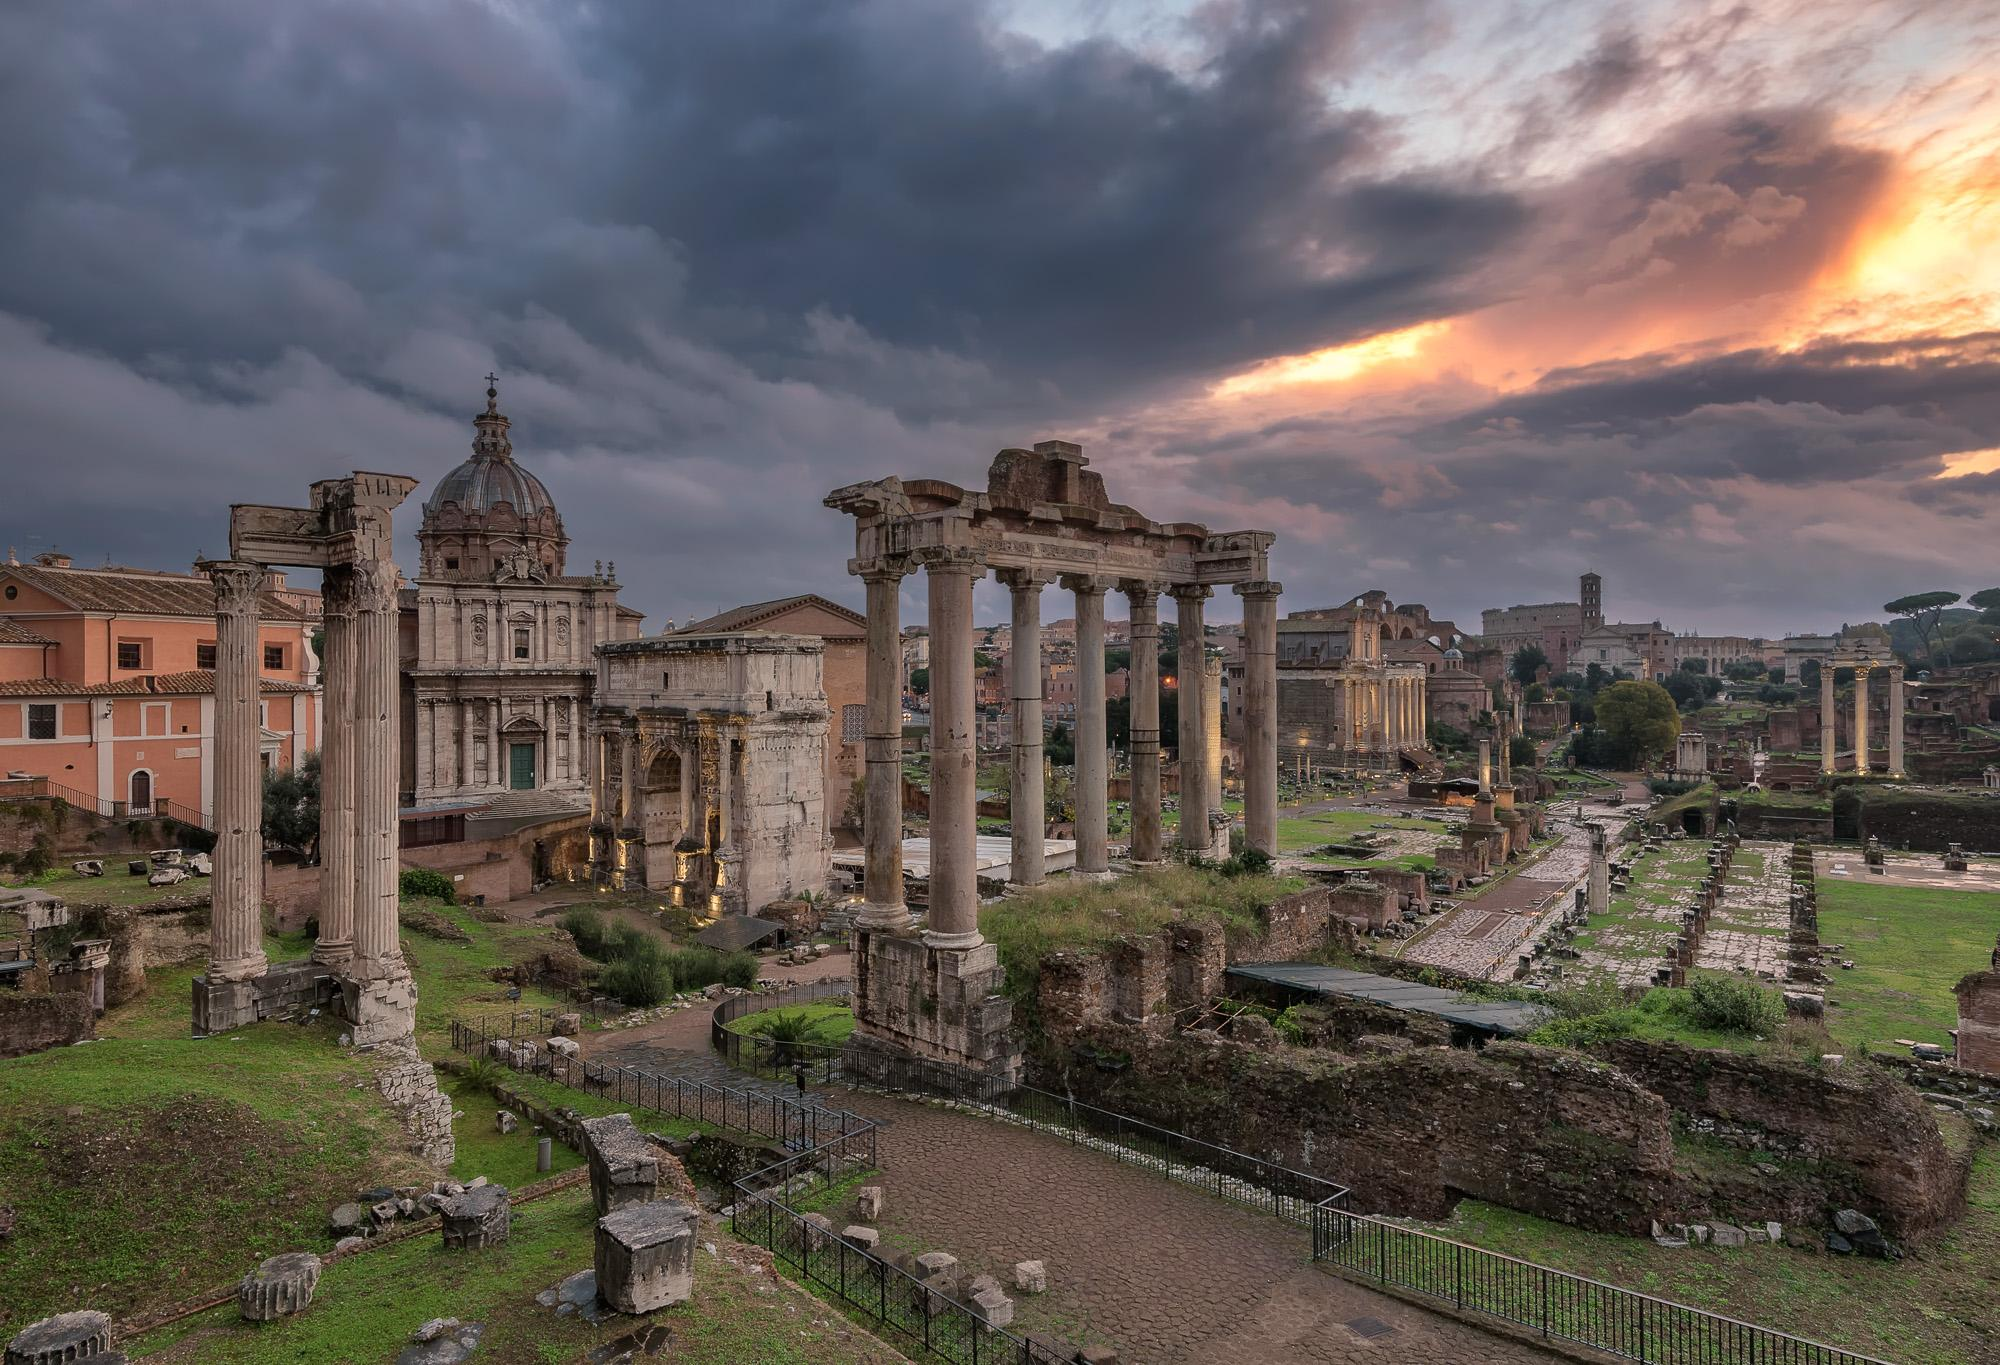 The eternal city - Rome, Italy